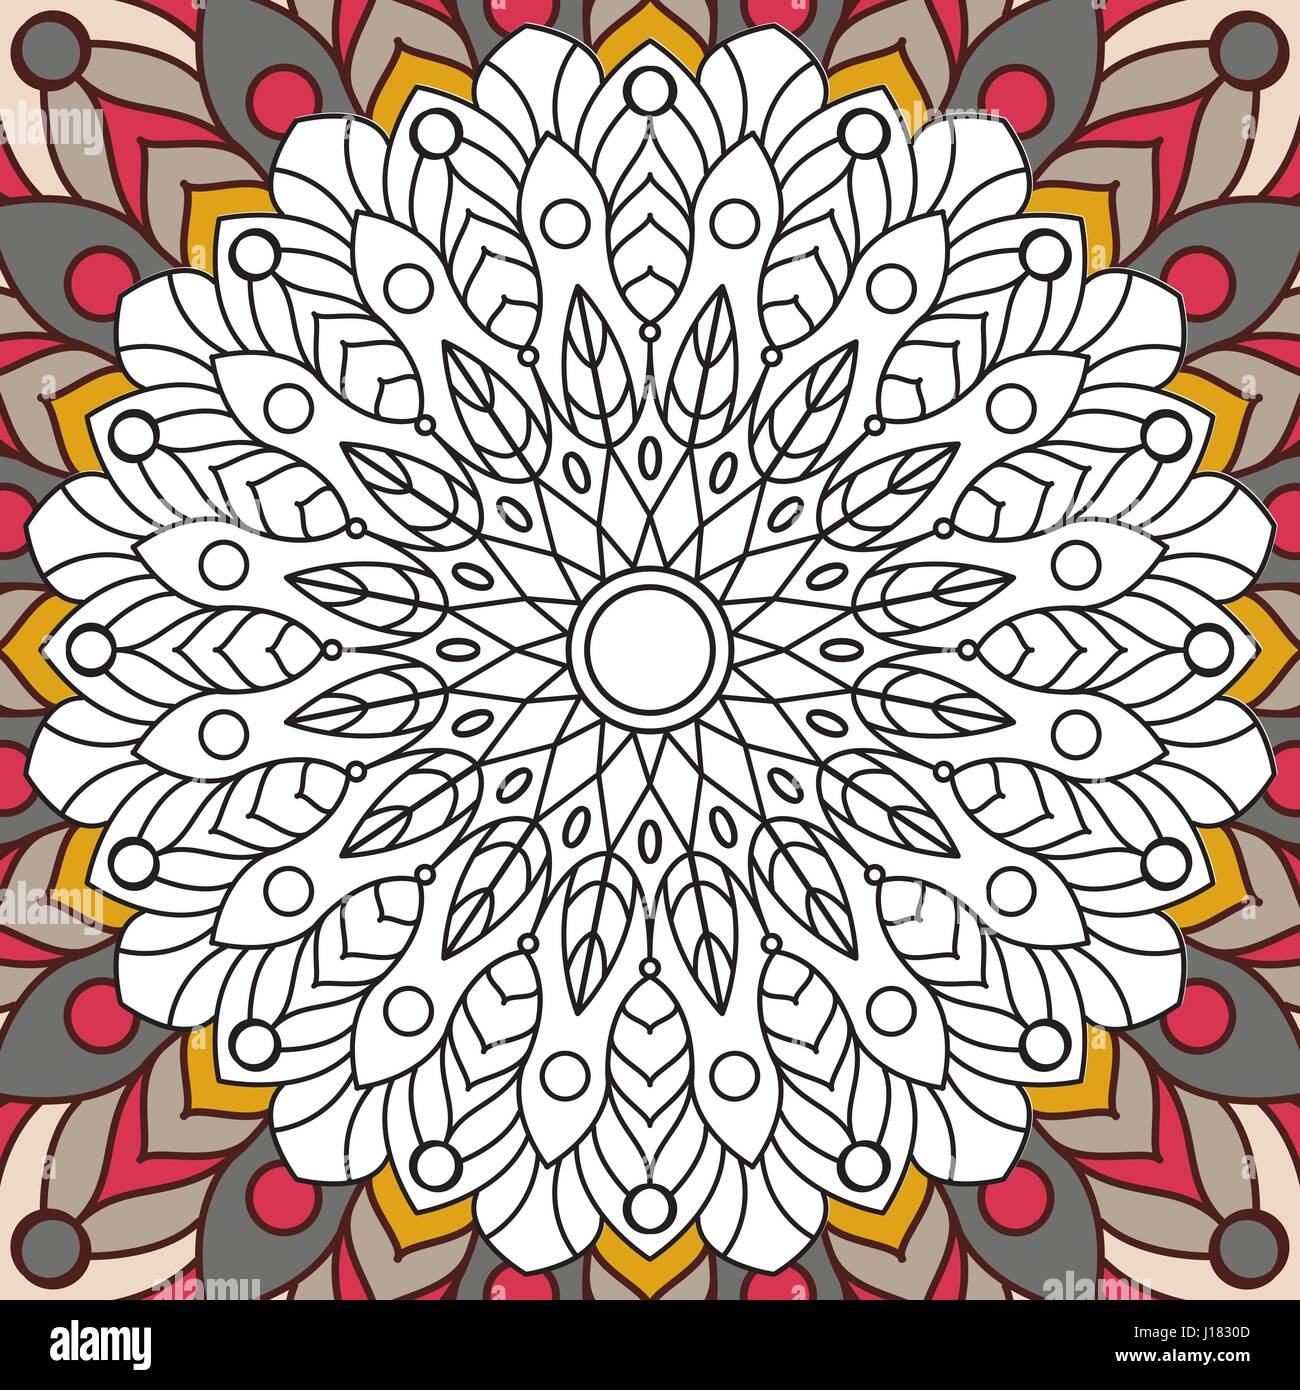 Coloring Book Page For Kids And Adult Imágenes De Stock & Coloring ...